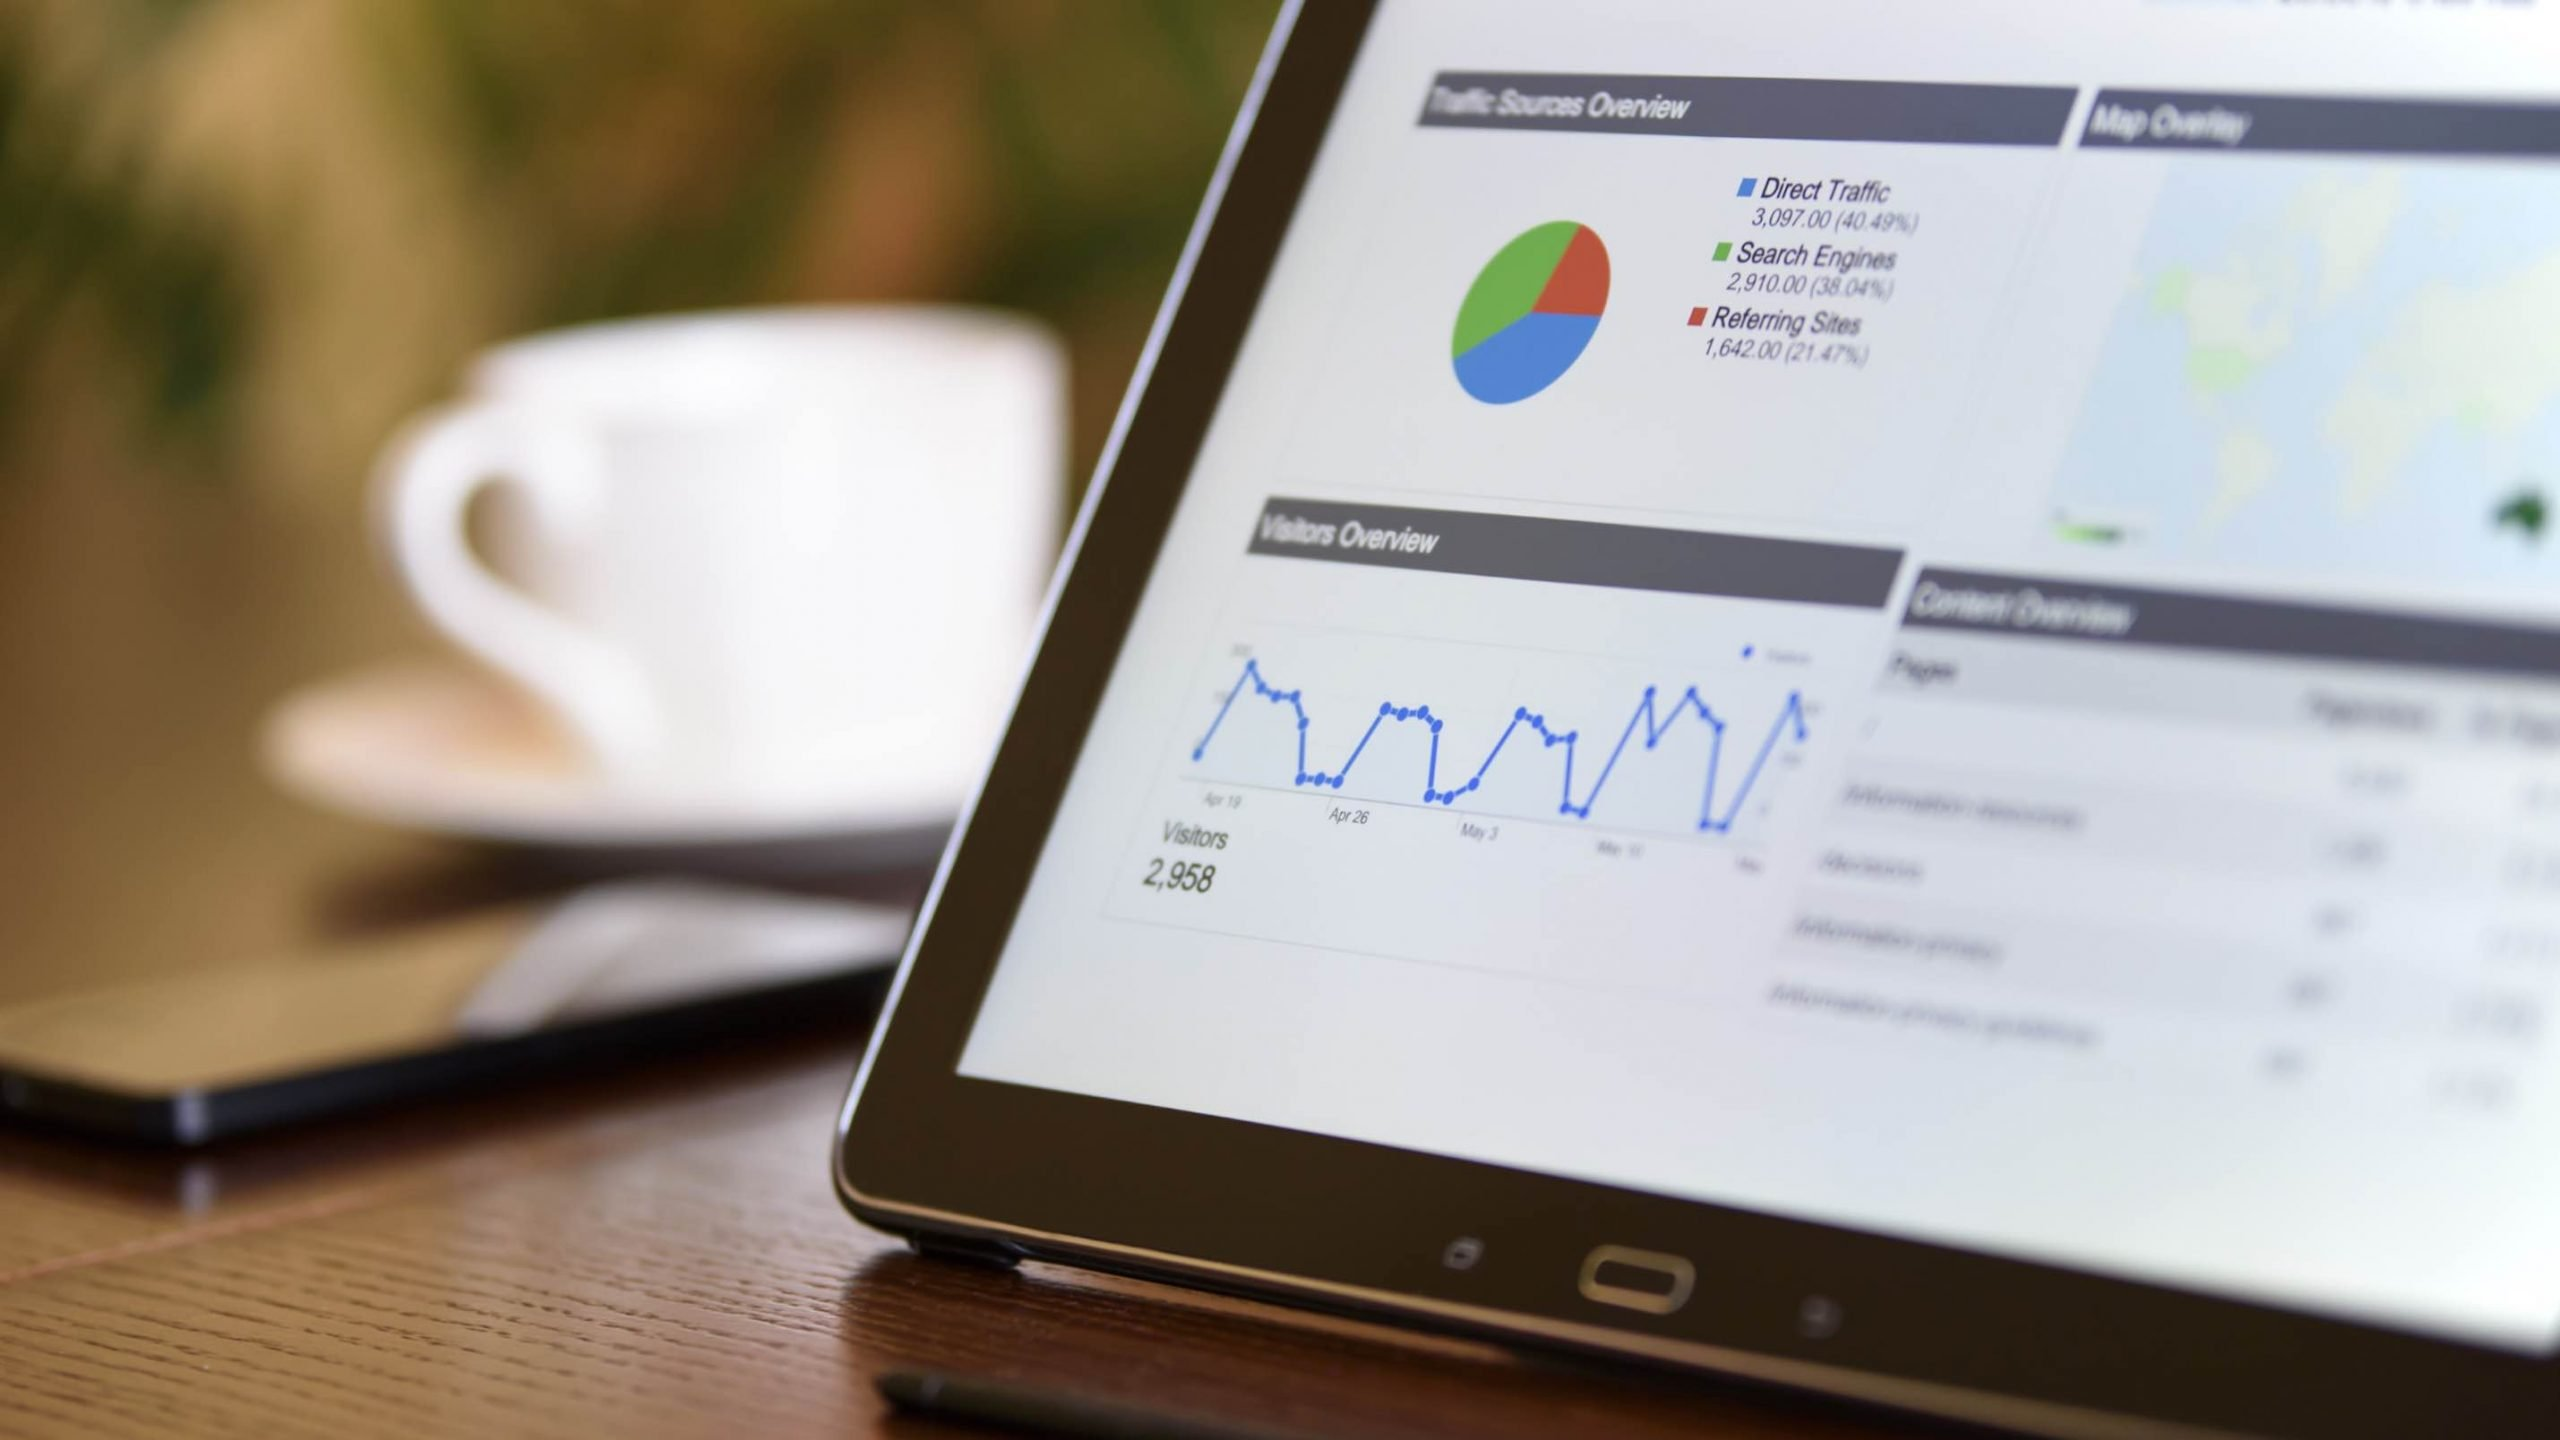 10 Smart Questions to Ask When Evaluating An SEO Agency